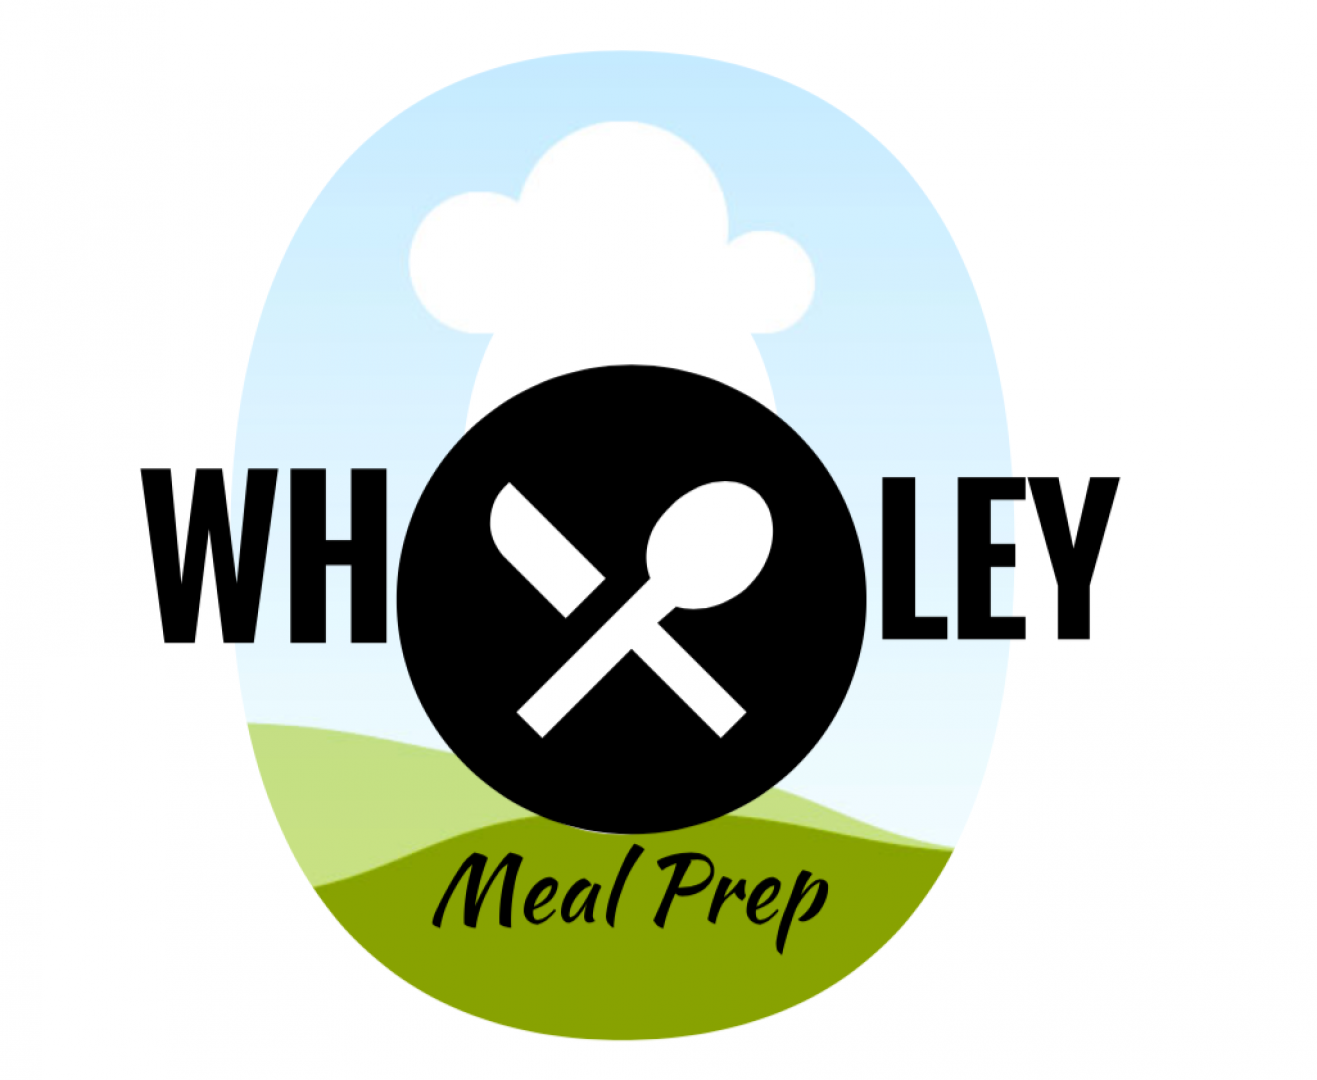 Wholey Meal Prep logo